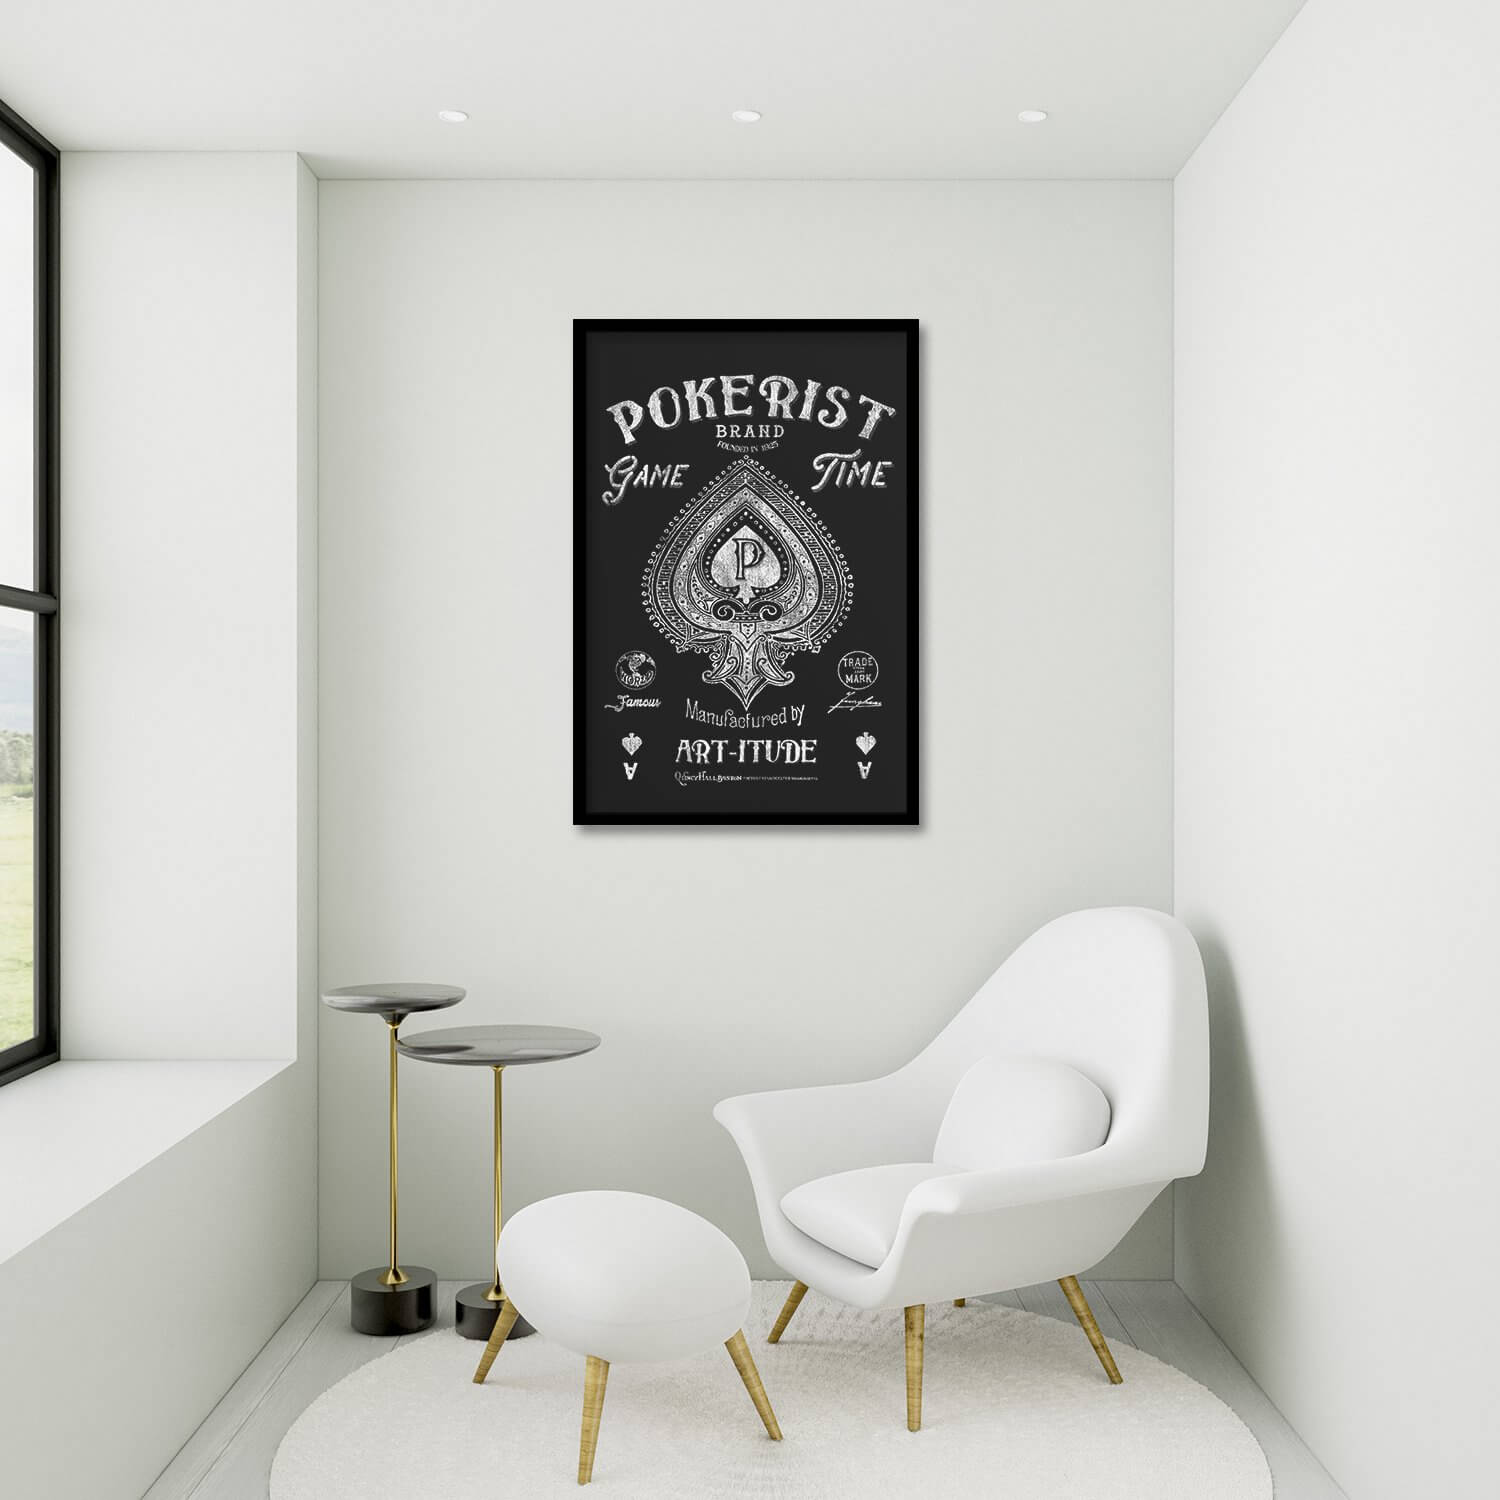 Game Time Pokerist Framed Poster